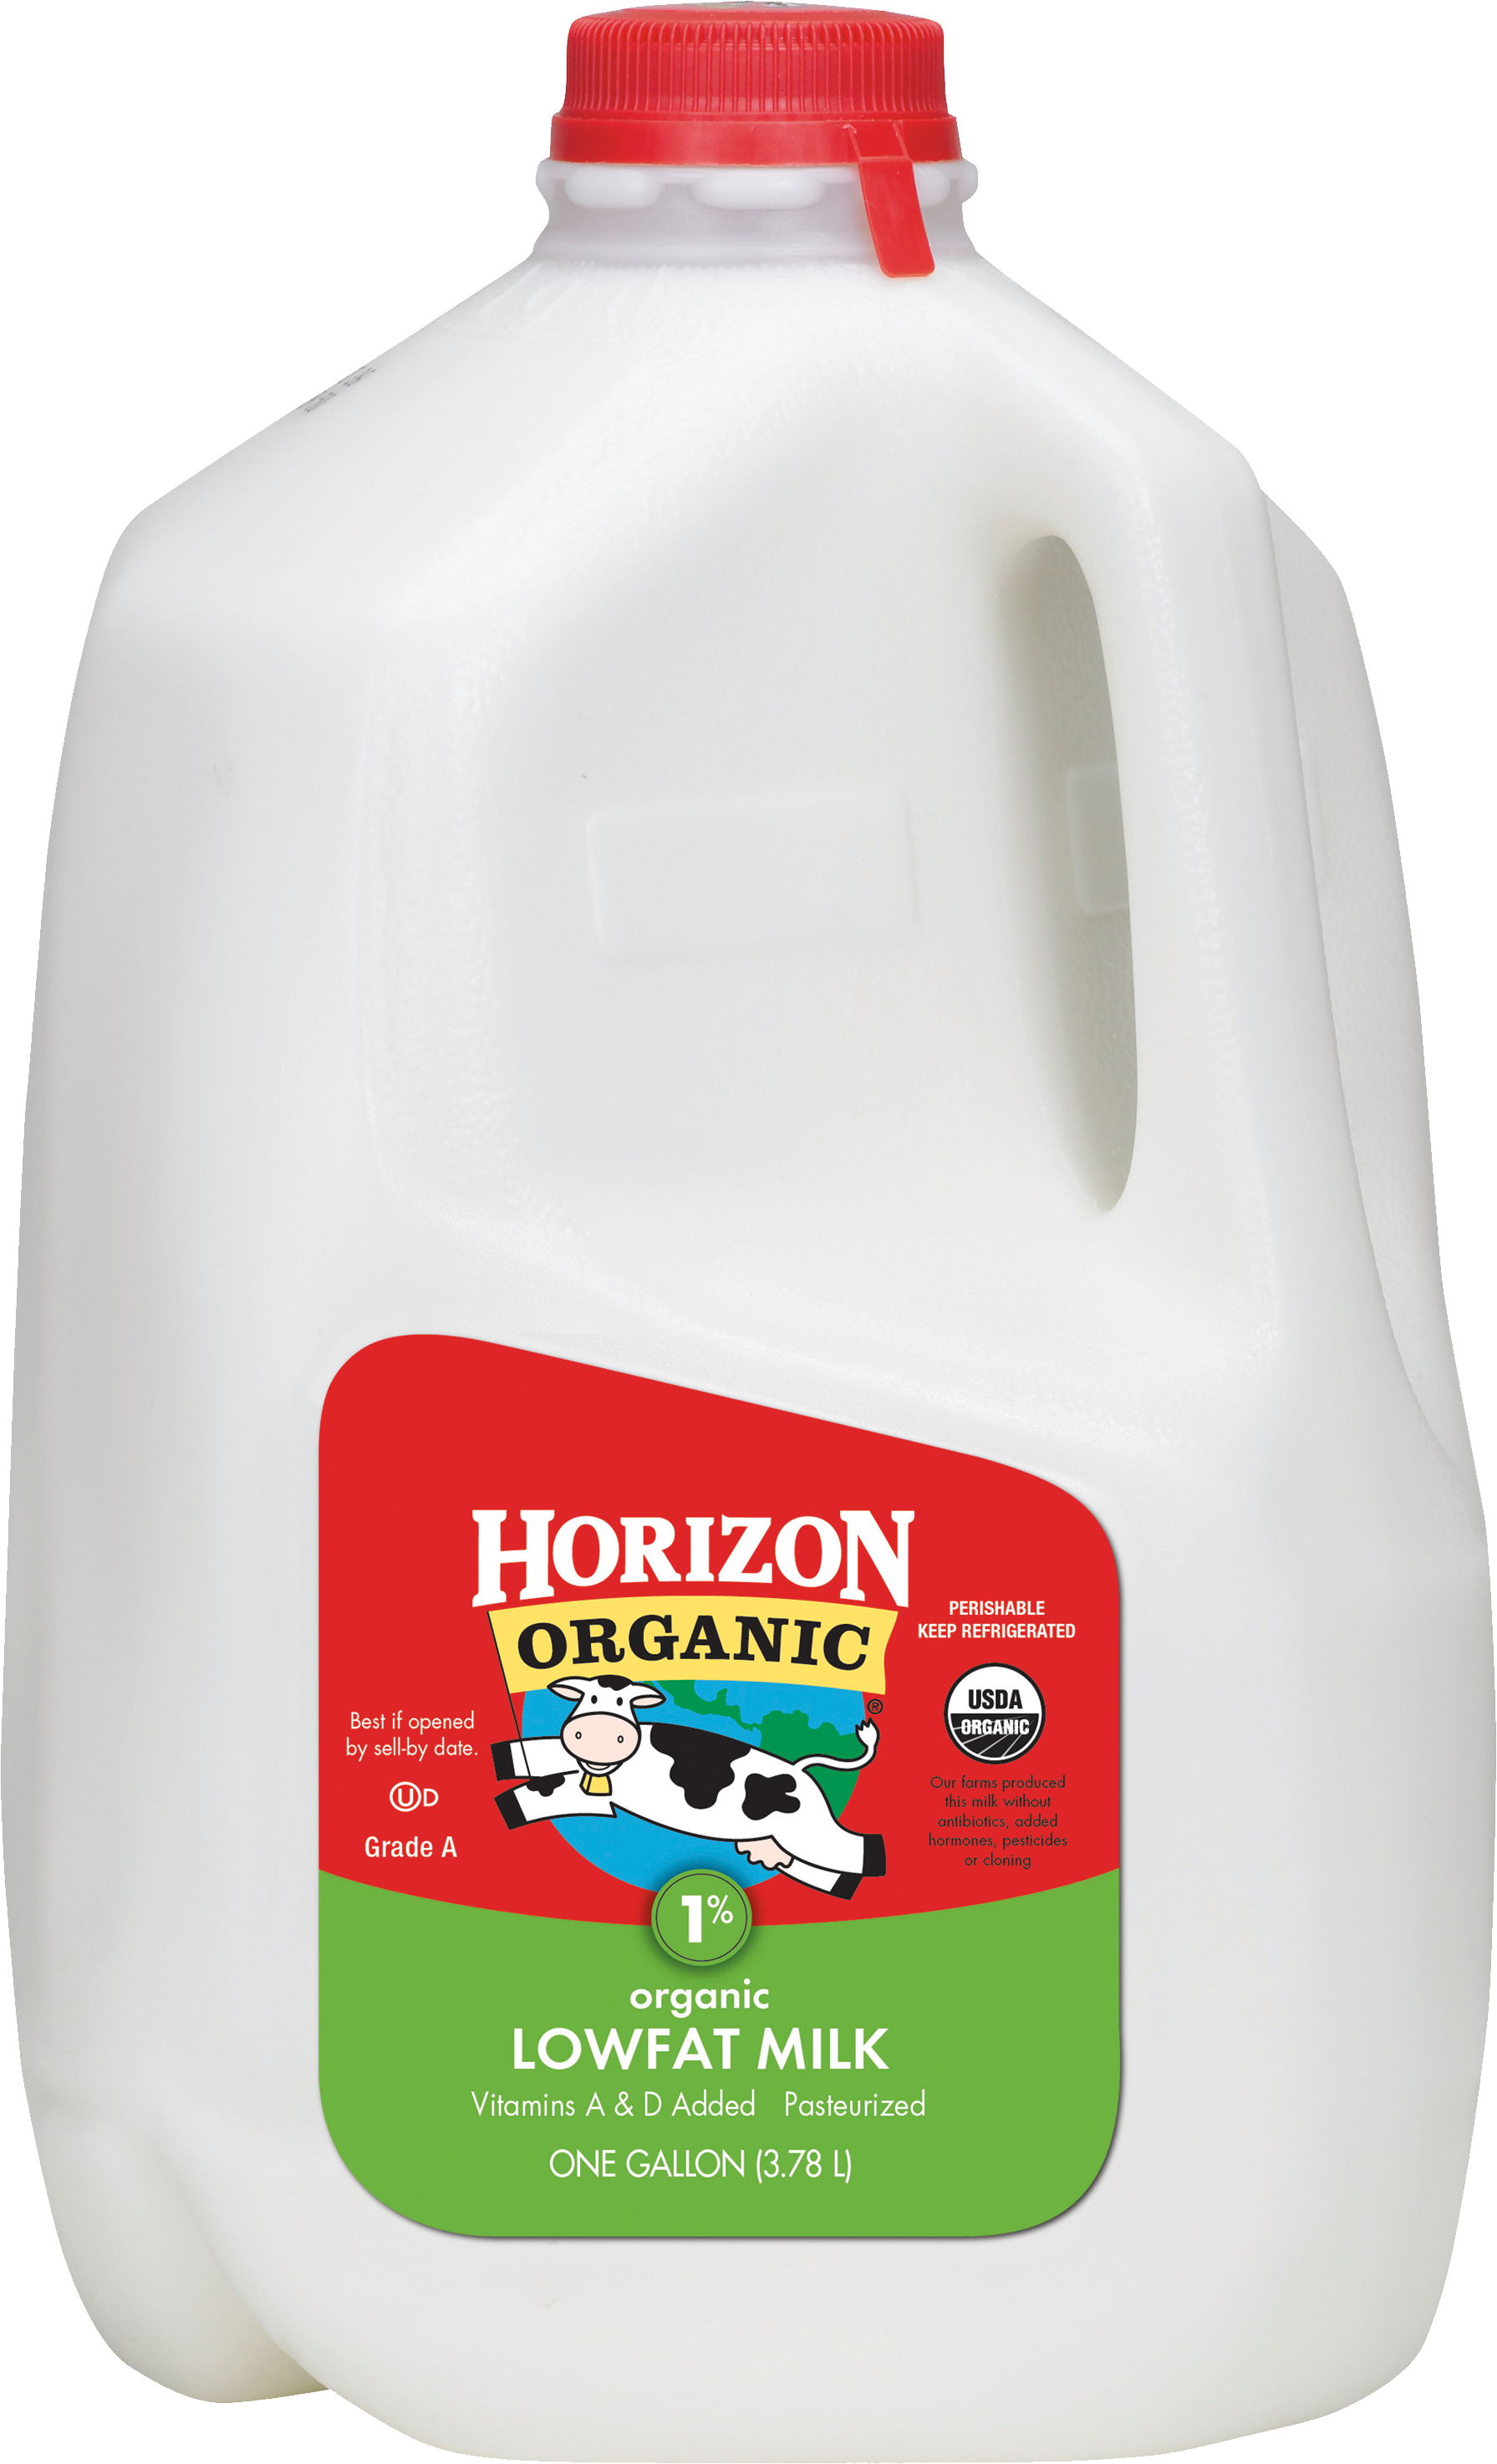 gallon of milk png